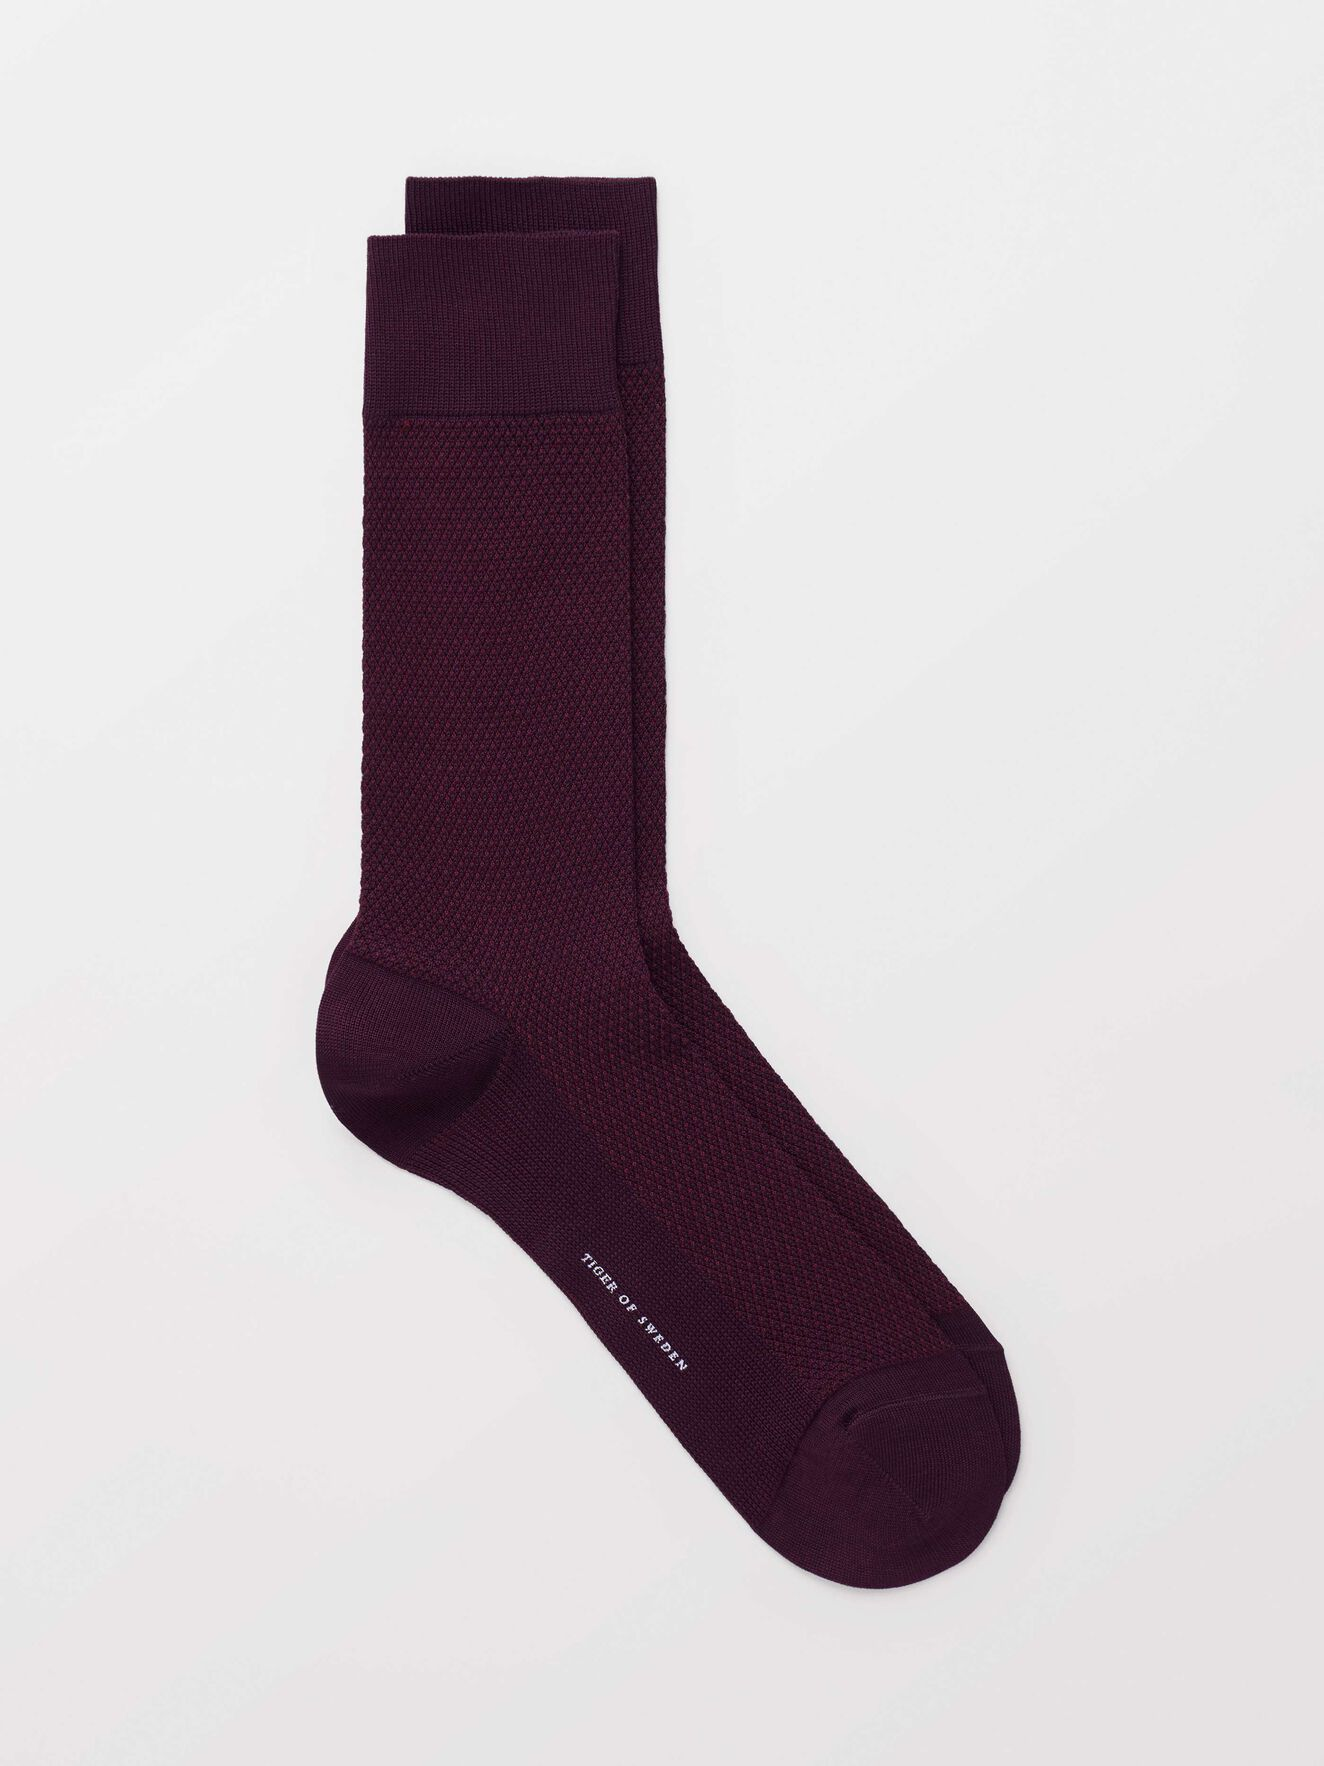 Caisto Socks in Noon Plum from Tiger of Sweden